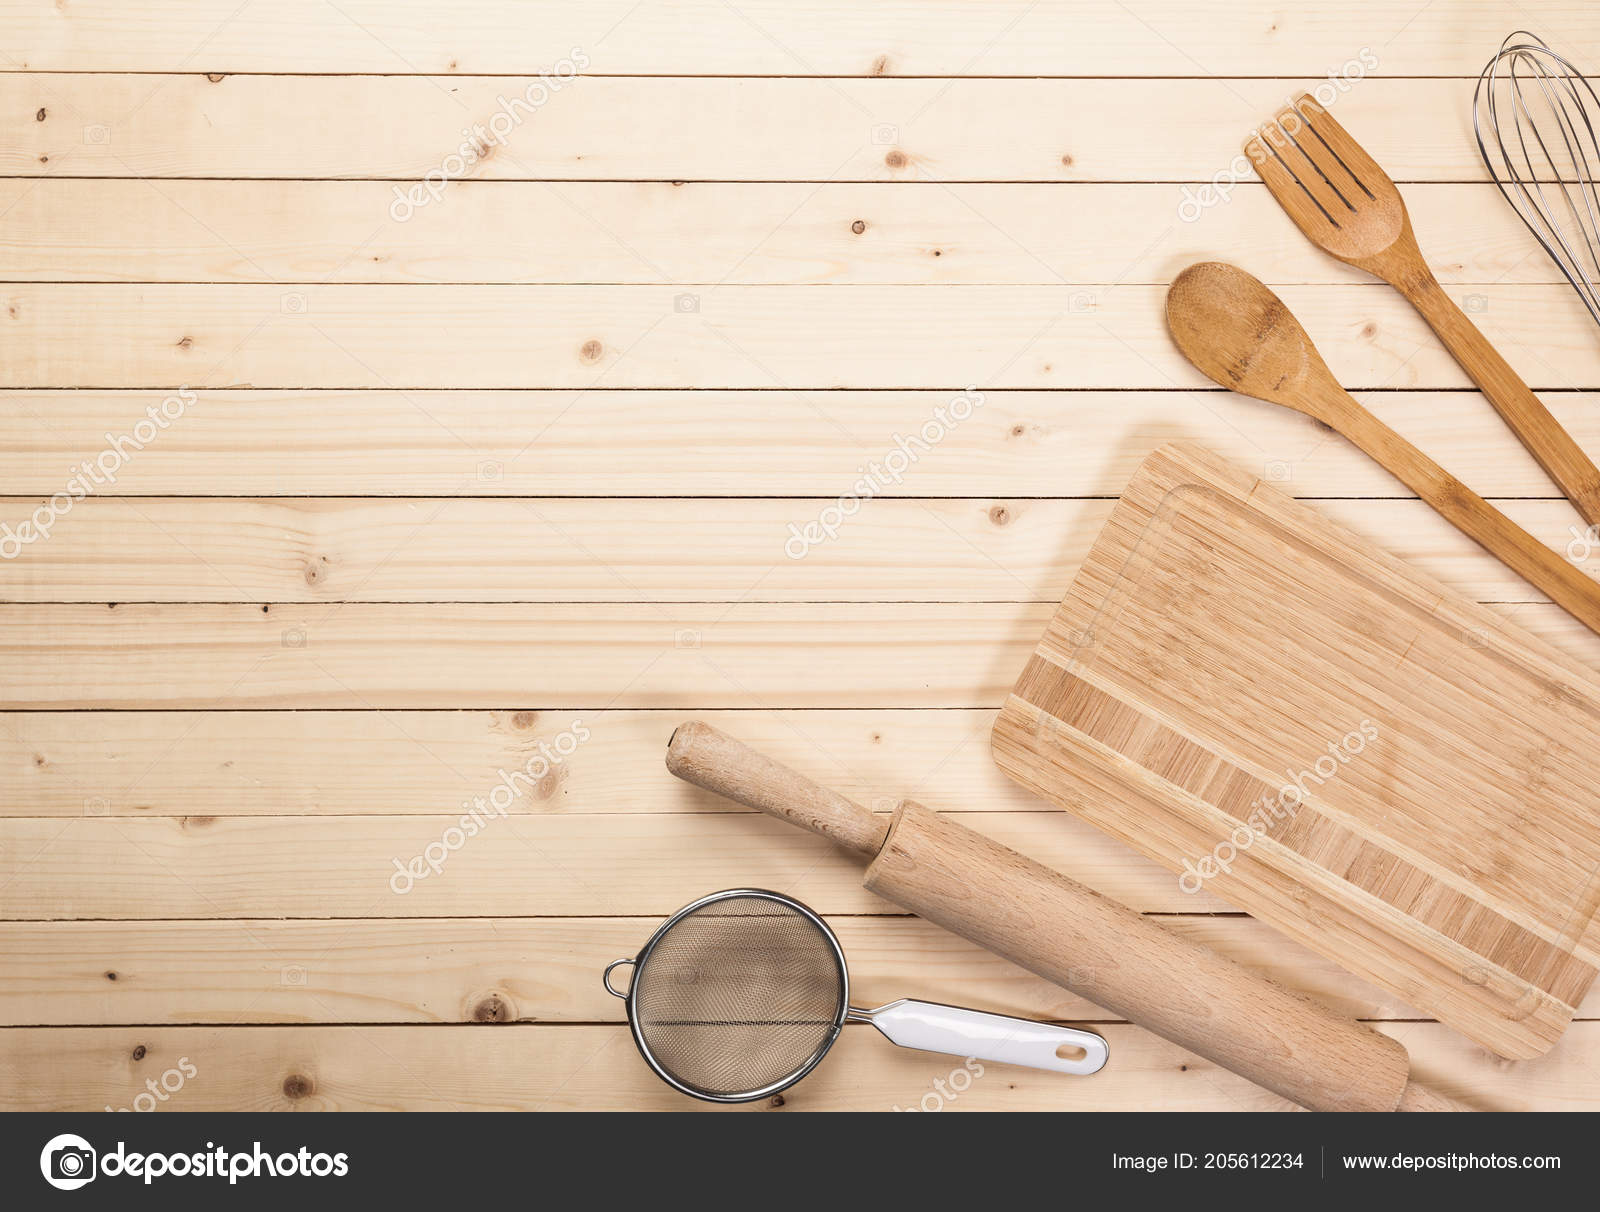 Various Wooden Kitchen Utensils Table Top View Stock Photo by ...